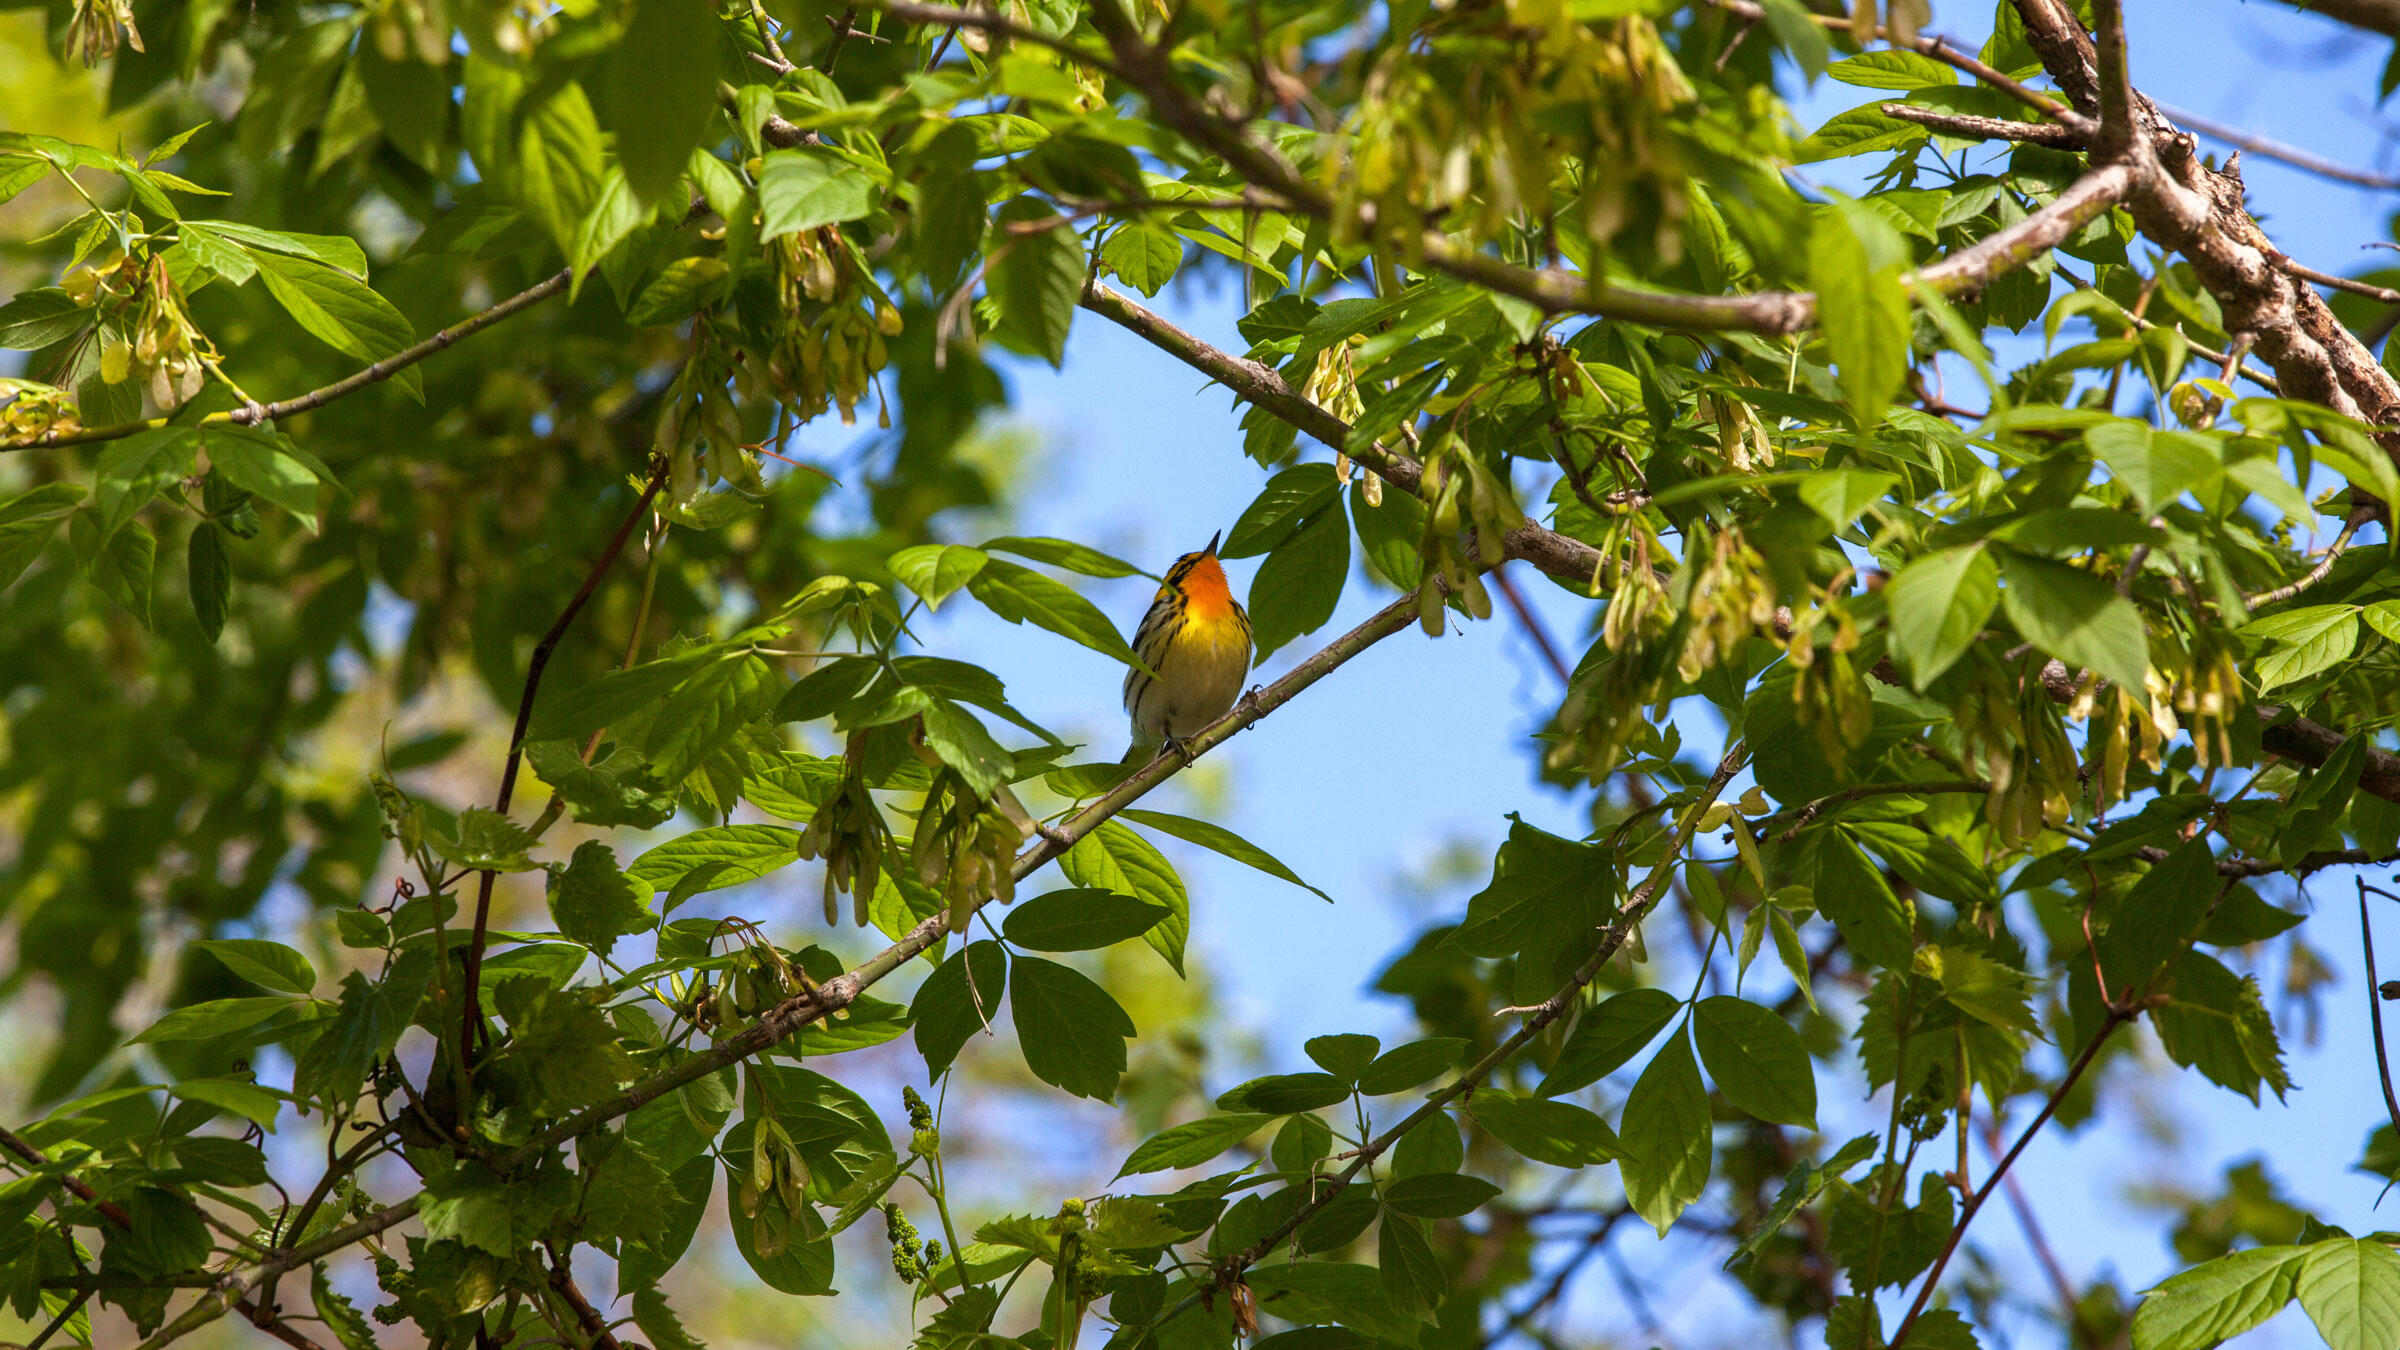 A Blackburnian Warbler sings in Ohio's Magee Marsh Wildlife Area, one of the best places in the country to see (and photograph) migrating warblers. Camilla Cerea/Audubon